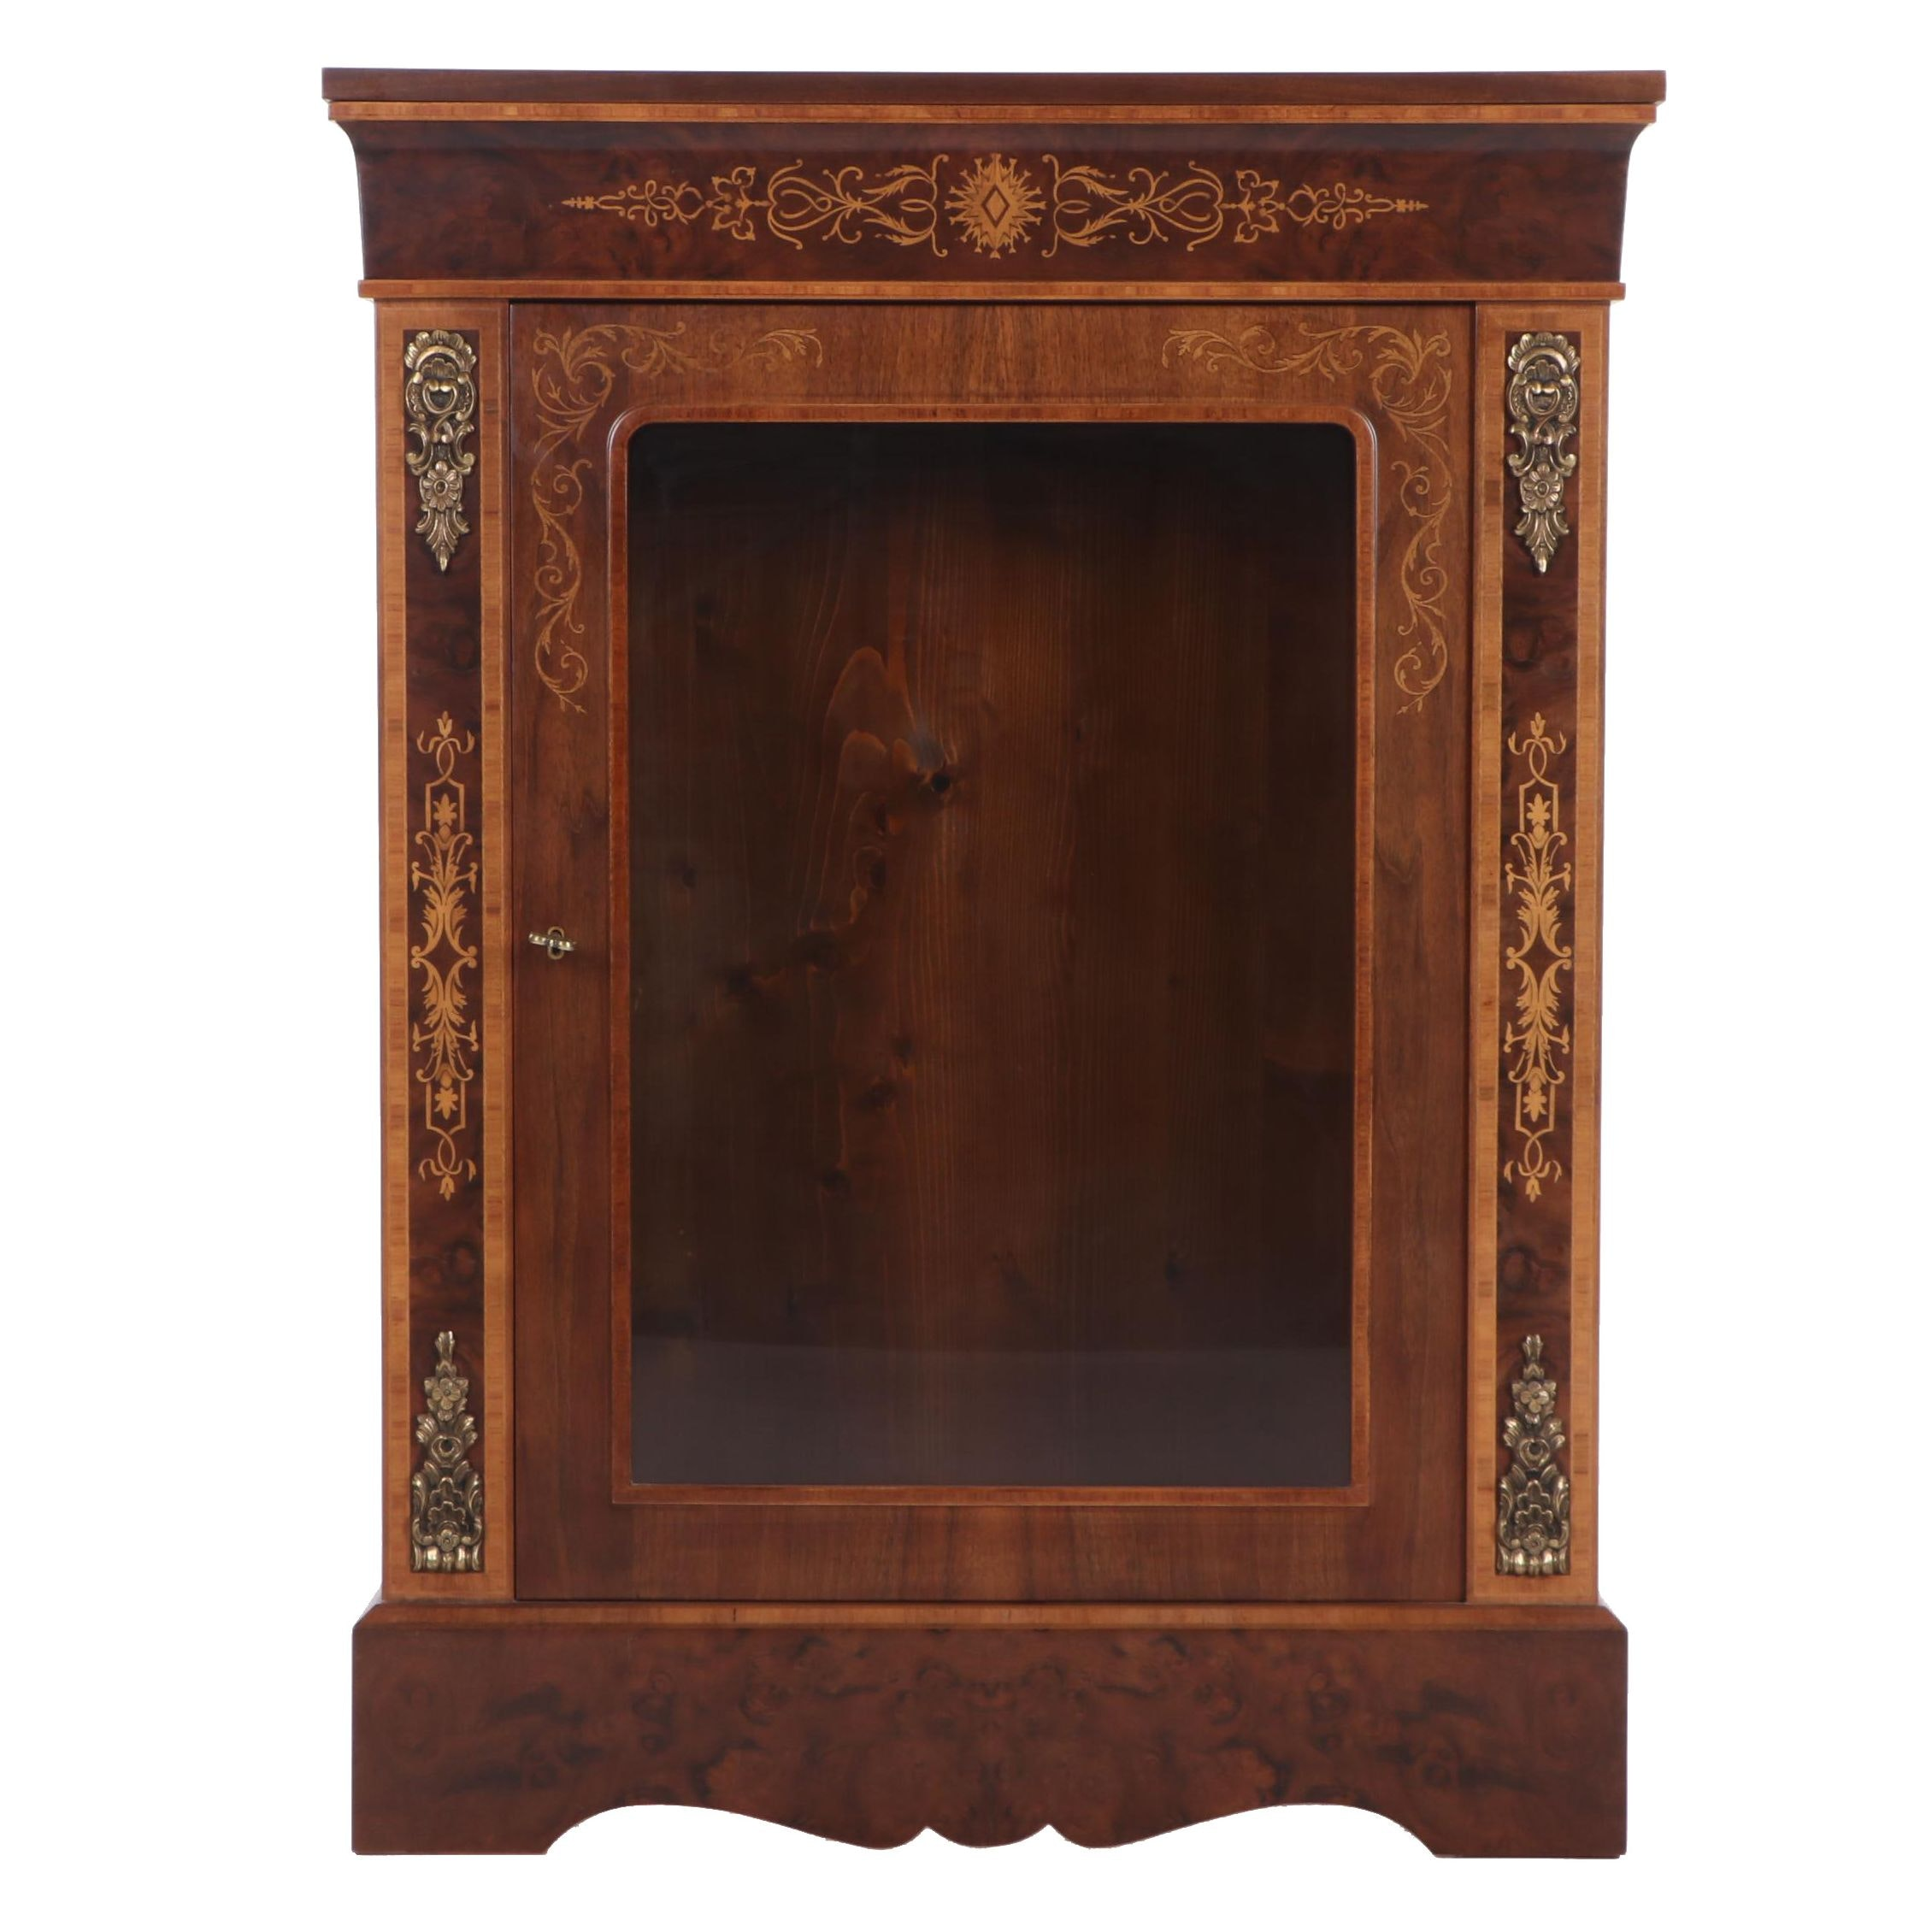 Neoclassical Figured Walnut and Maple Inlay Display Cabinet, Contemporary